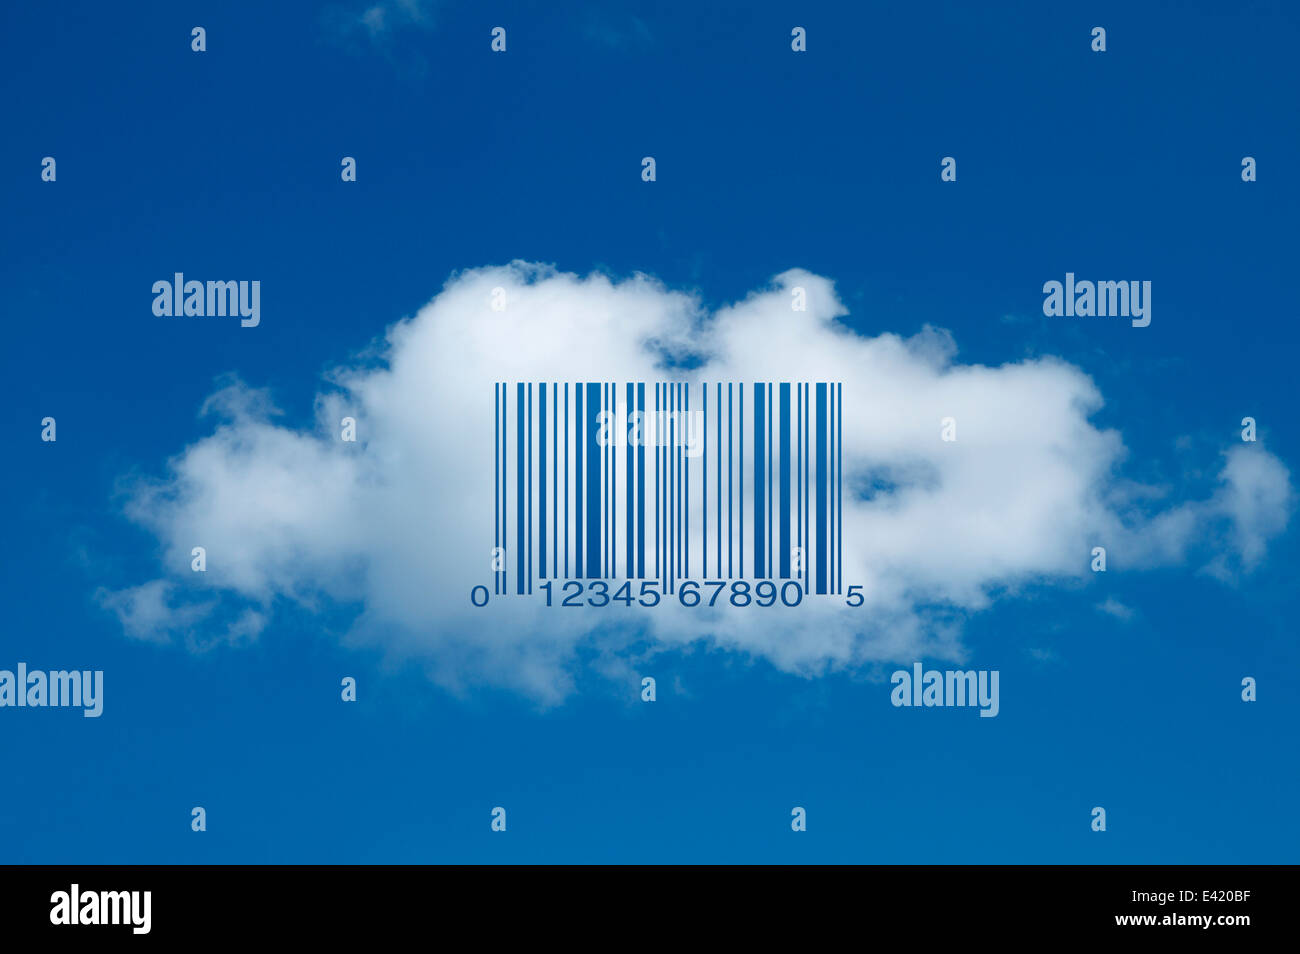 Barcode on cloud (universal product code UPC-A) Stock Photo